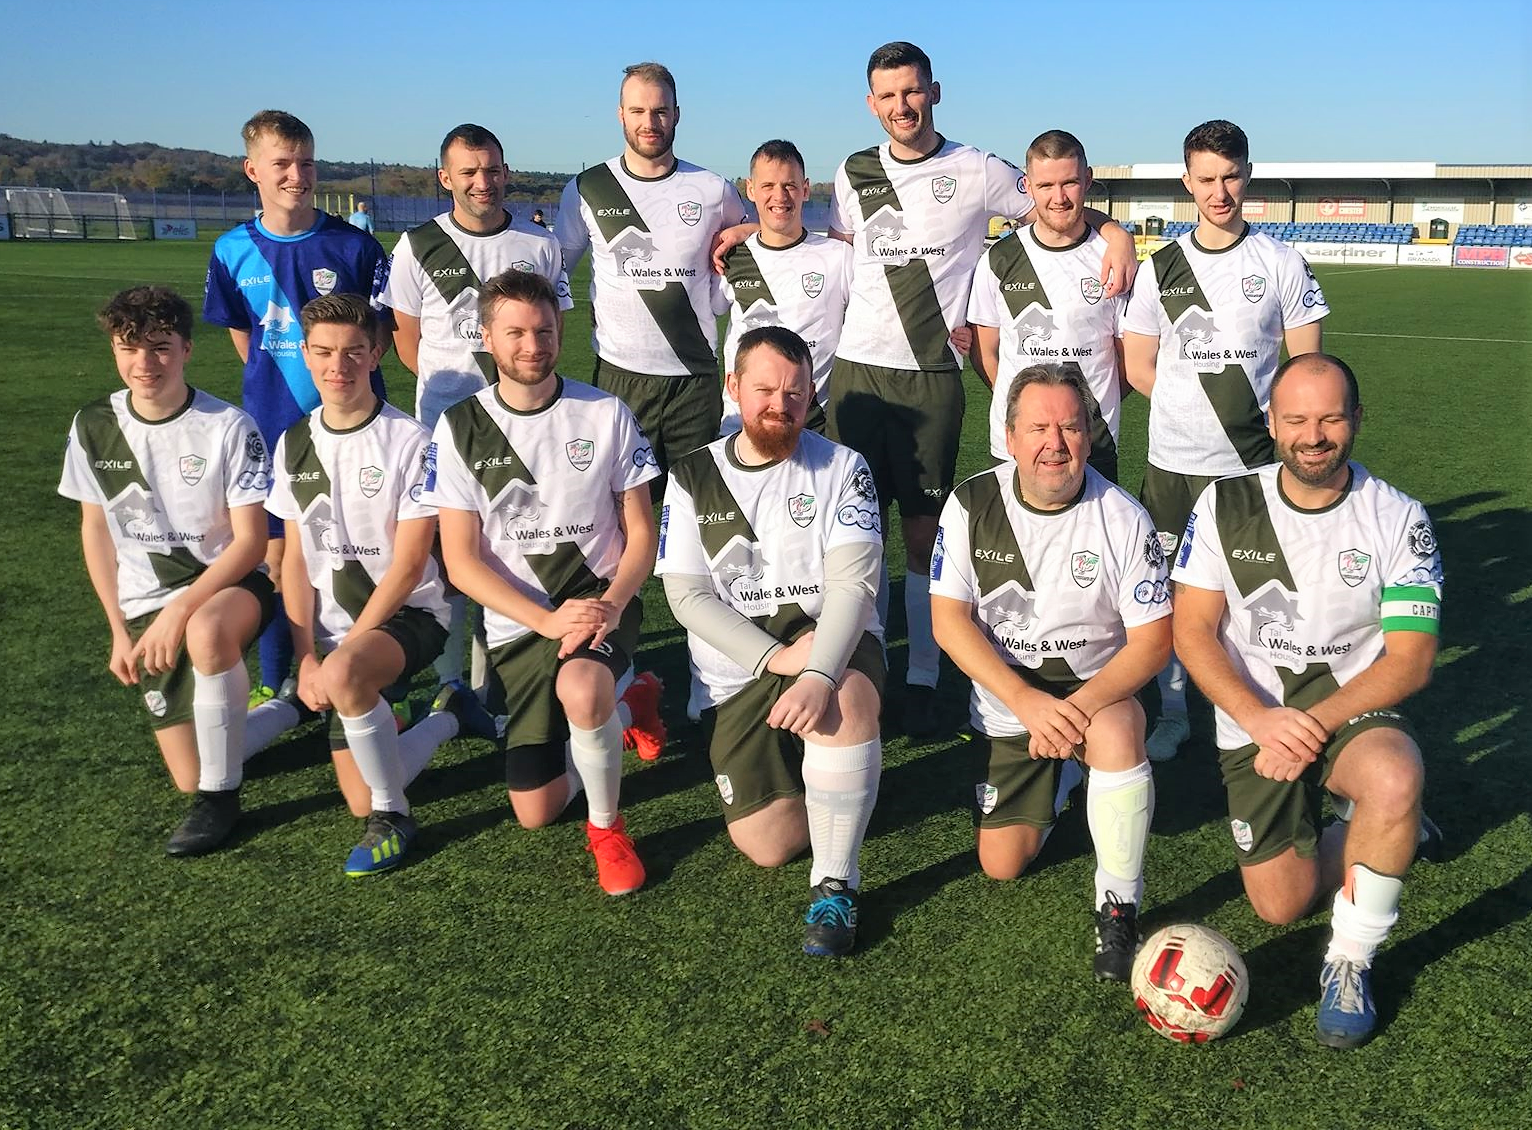 Football club celebrates 10 years of fundraising success with African prison partnership